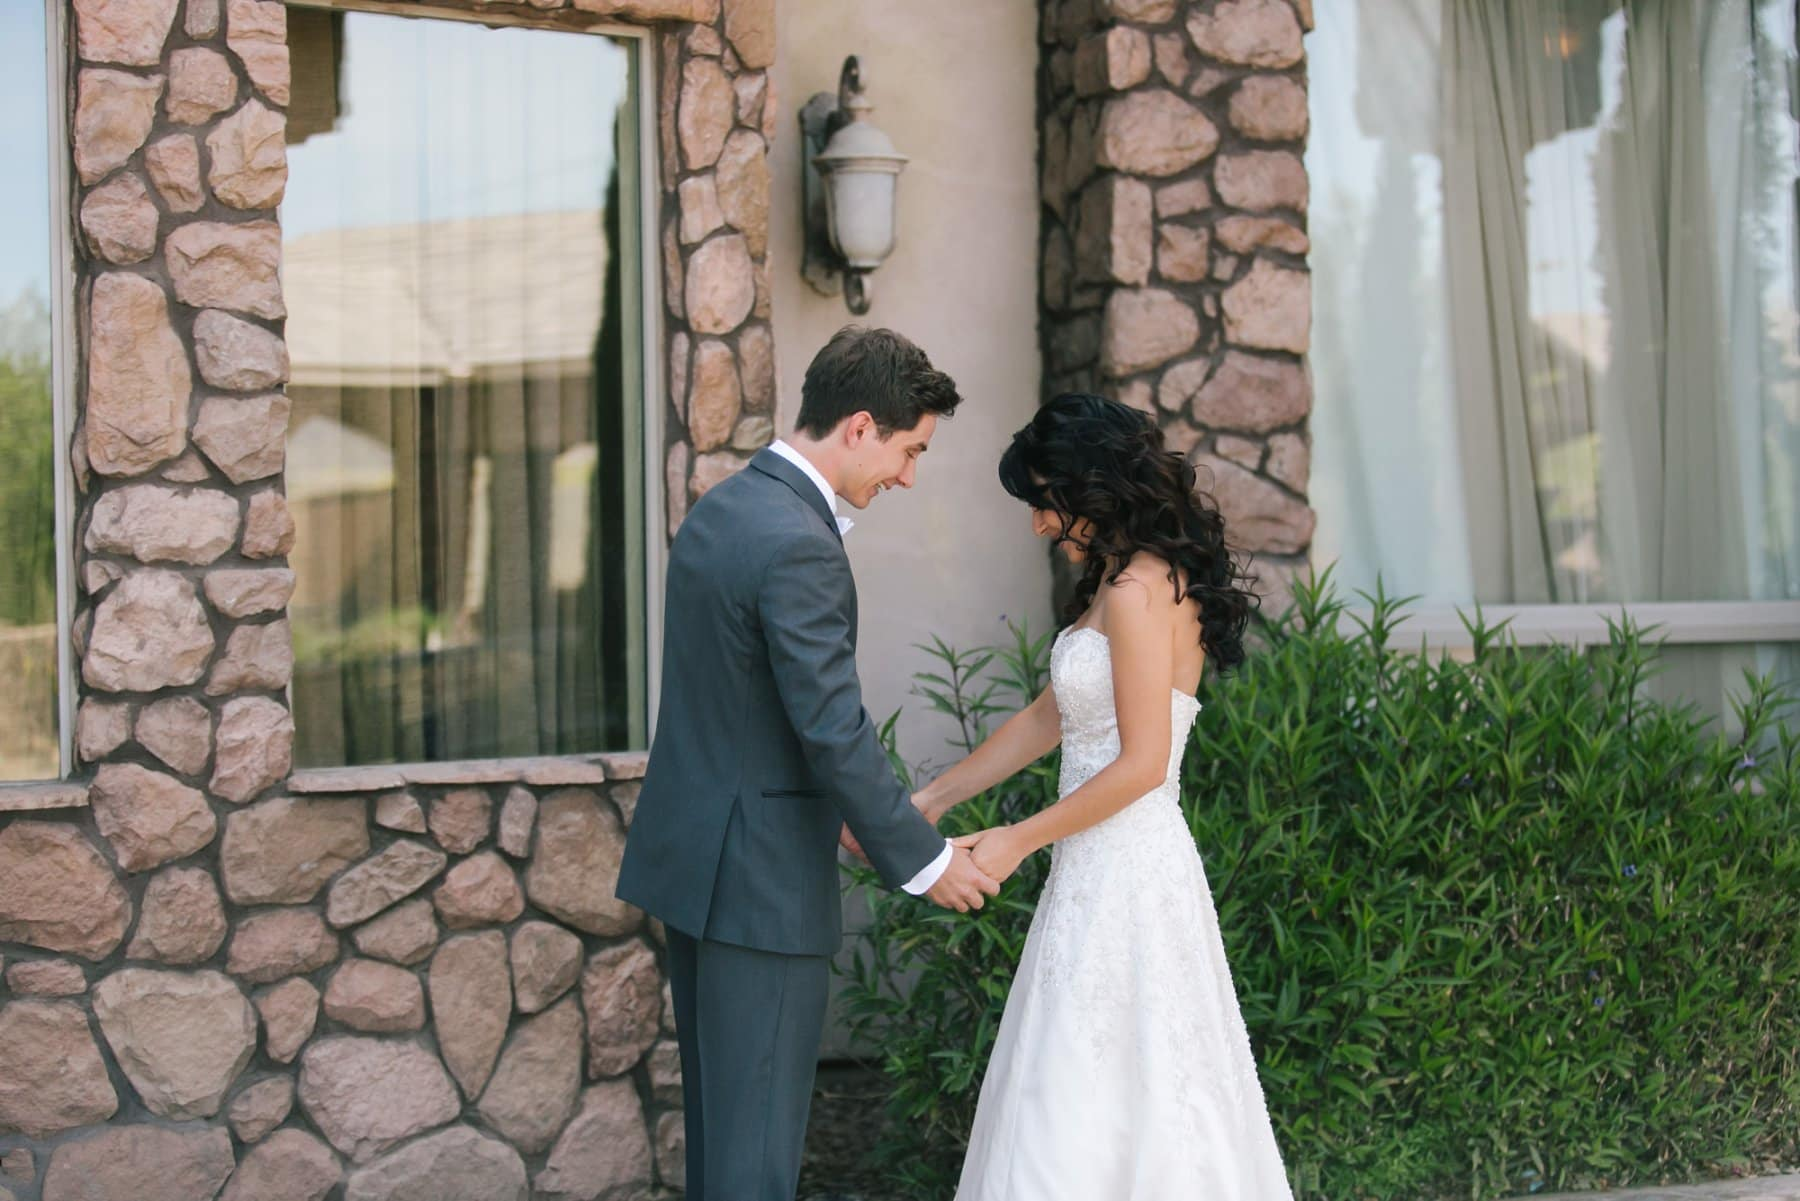 Superstition Manor wedding bride & groom first look